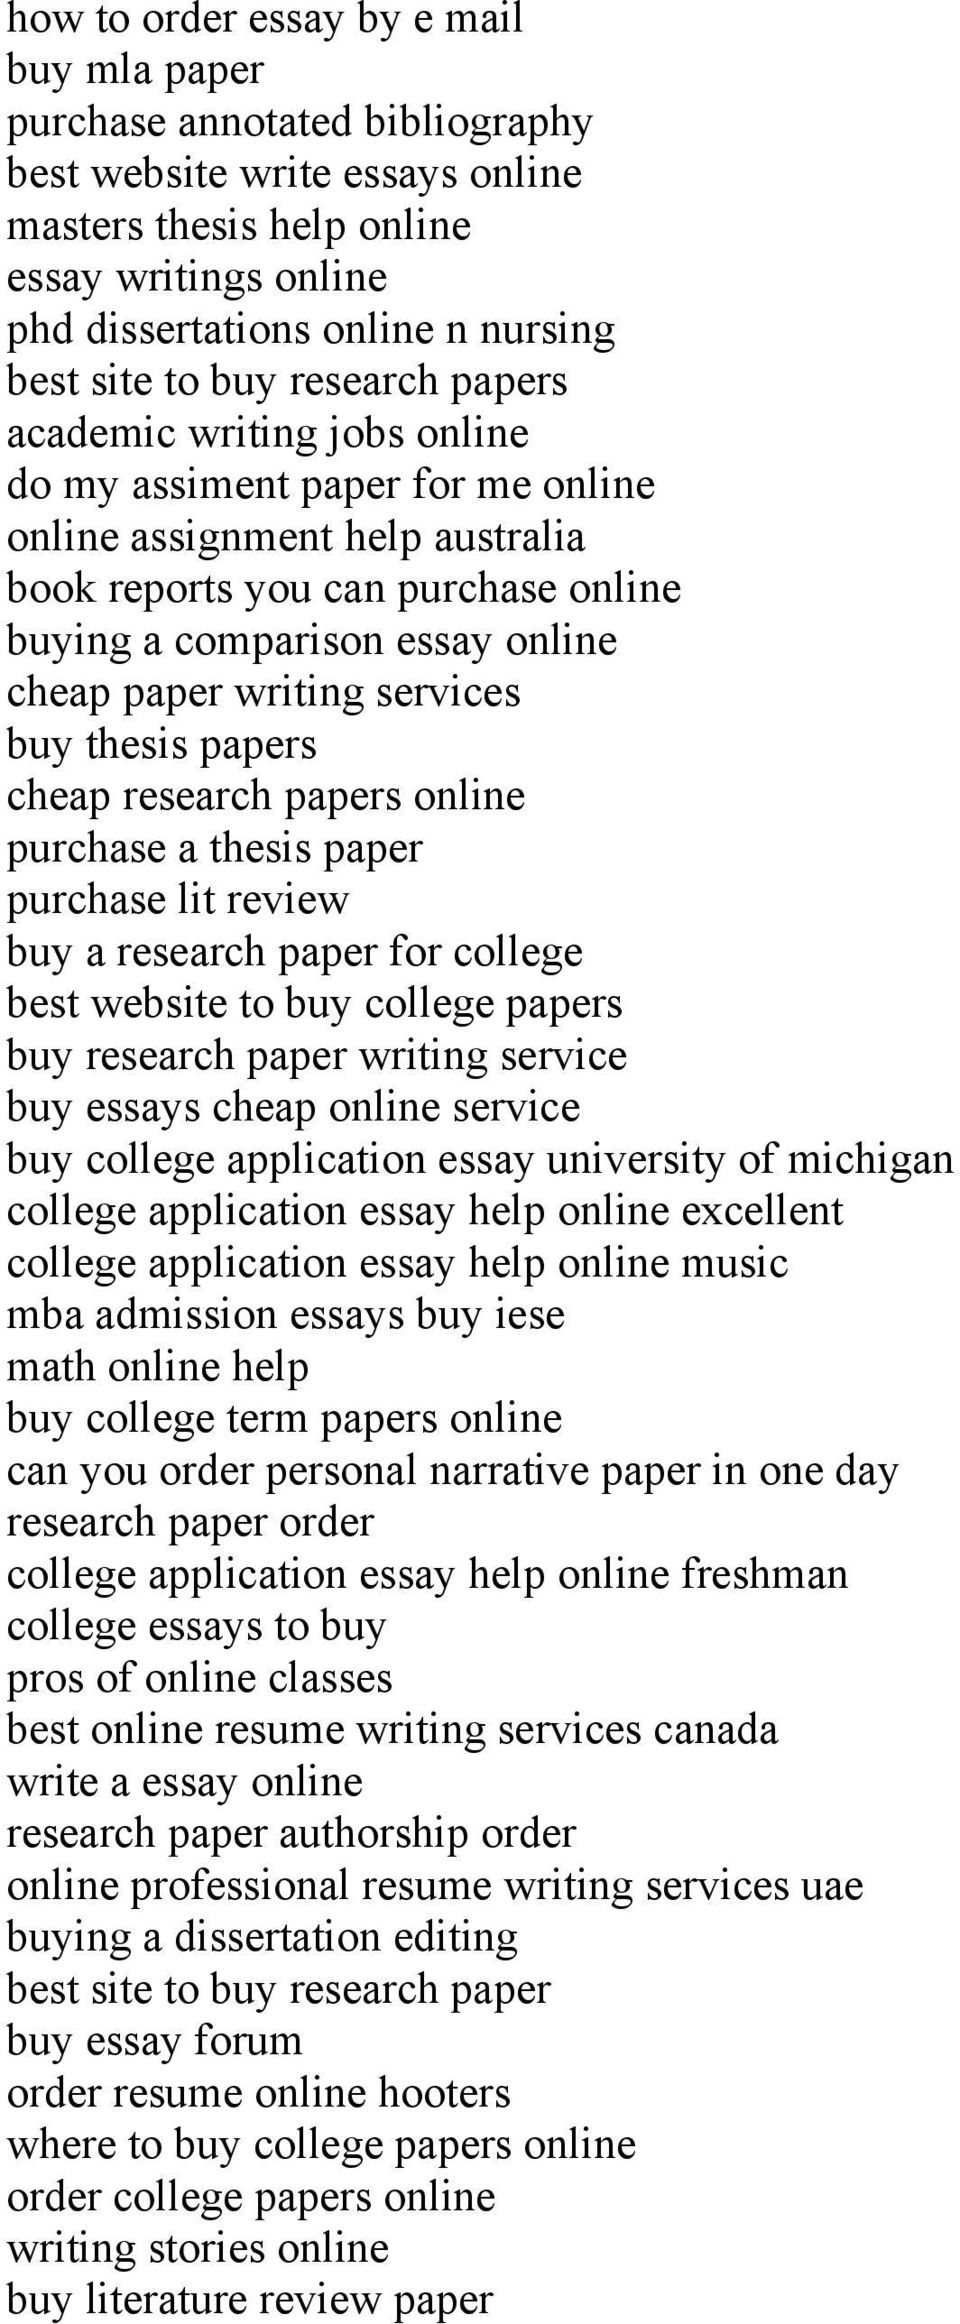 cheap paper writing services buy thesis papers cheap research papers online purchase a thesis paper purchase lit review buy a research paper for college best website to buy college papers buy